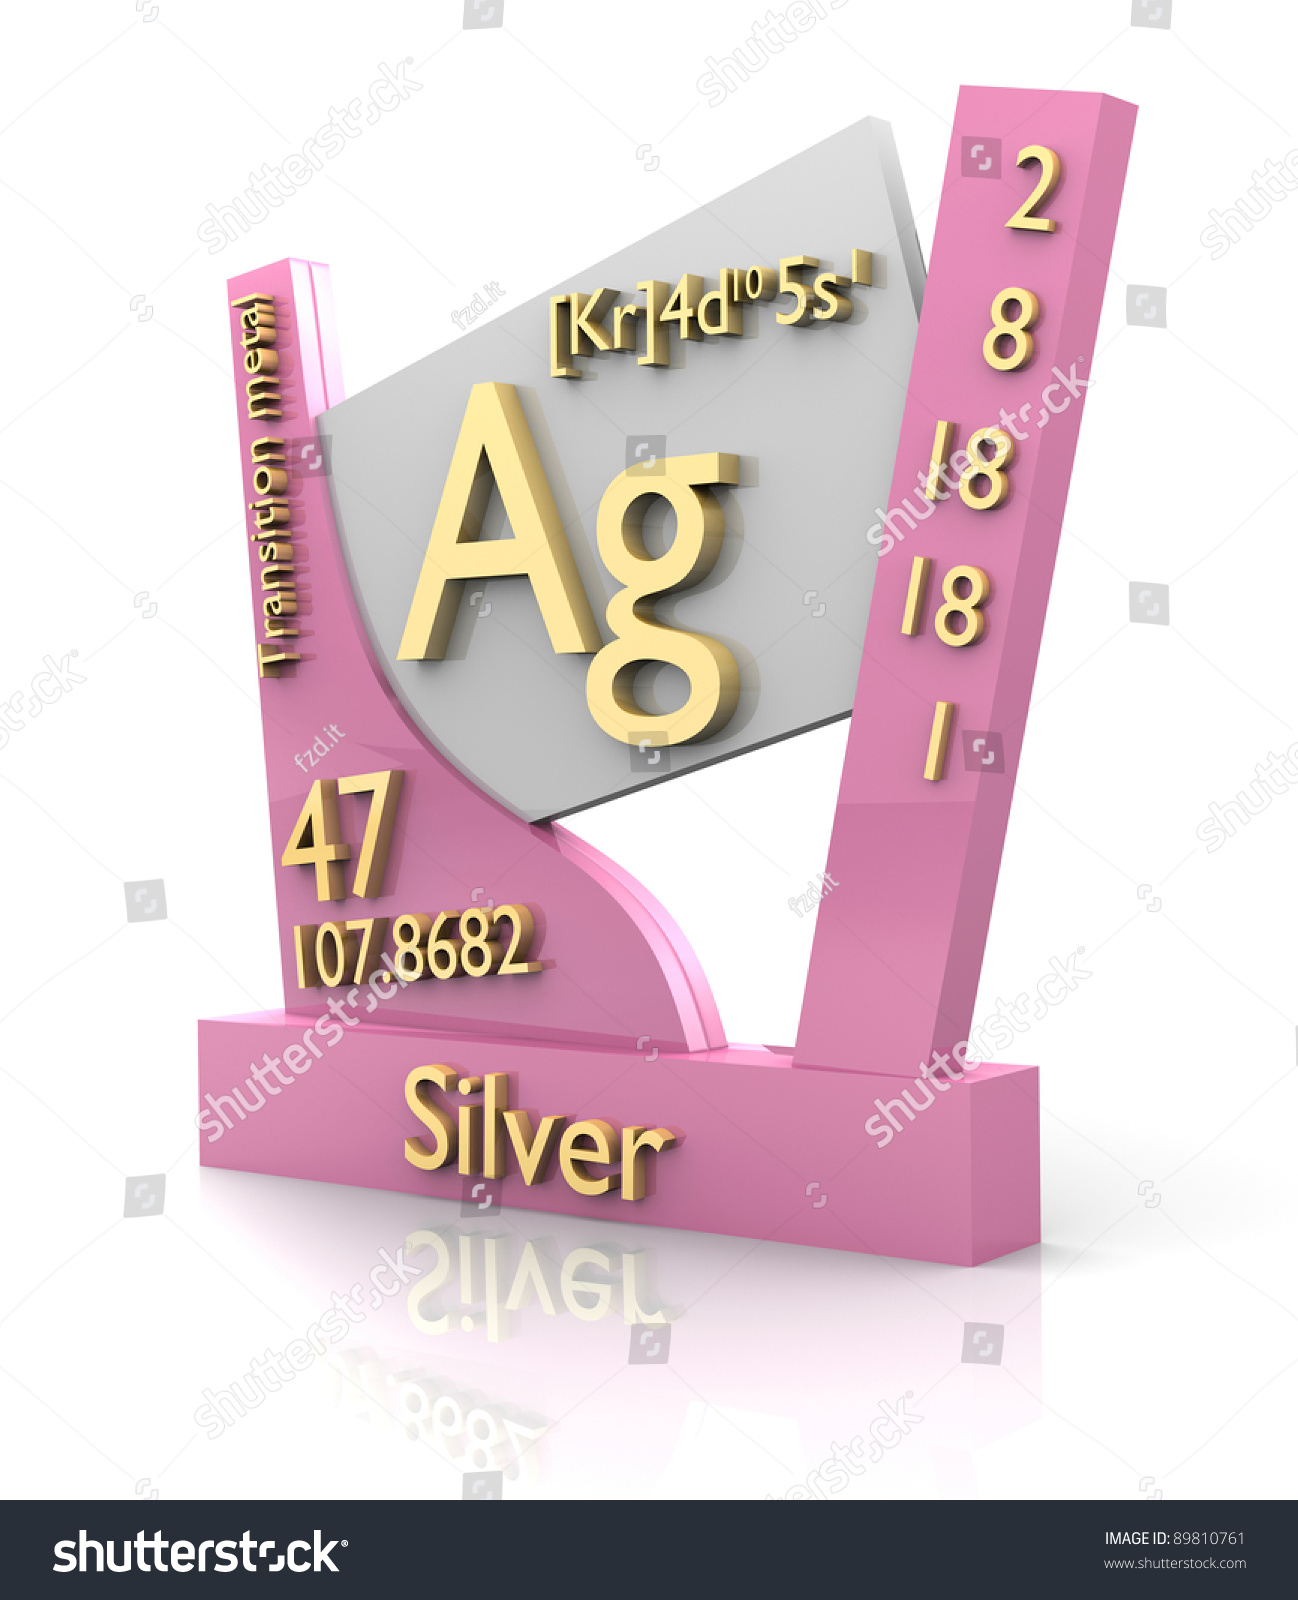 Silver form periodic table elements 3d stock illustration 89810761 silver form periodic table of elements 3d made gamestrikefo Image collections